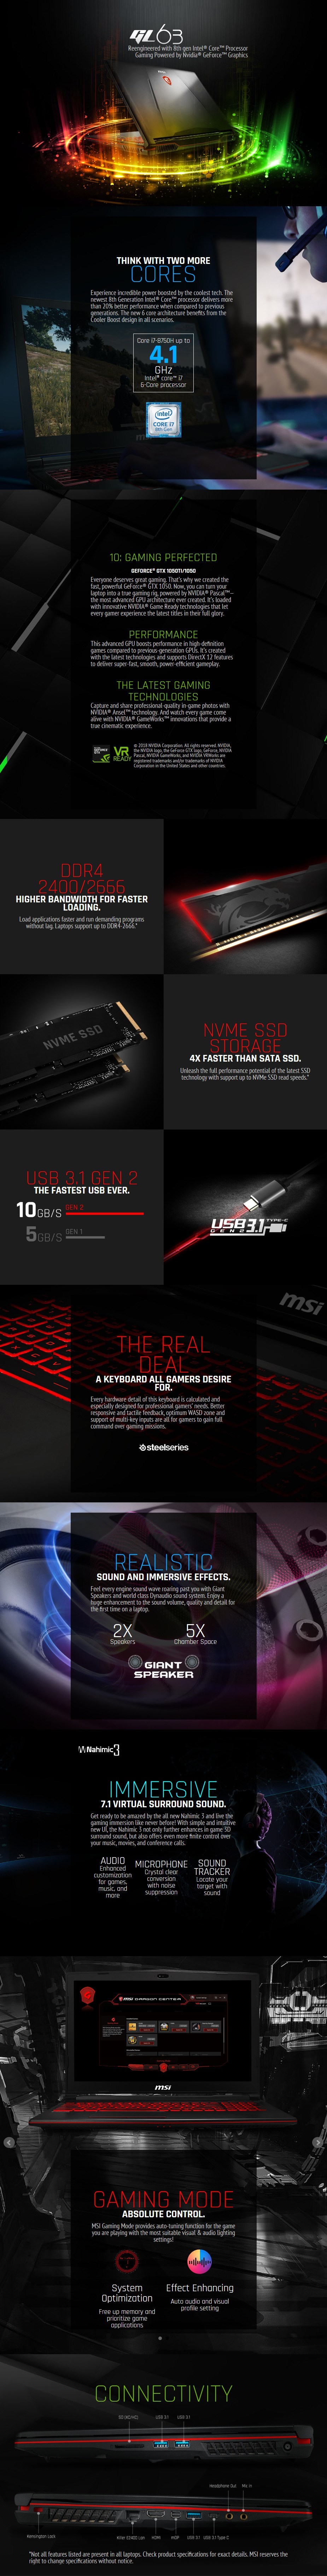 """MSI GL63 8RE-846AU 15.6"""" Gaming Laptop i7-8750H 16GB 512GB GTX1060 W10H - Desktop Overview 1"""